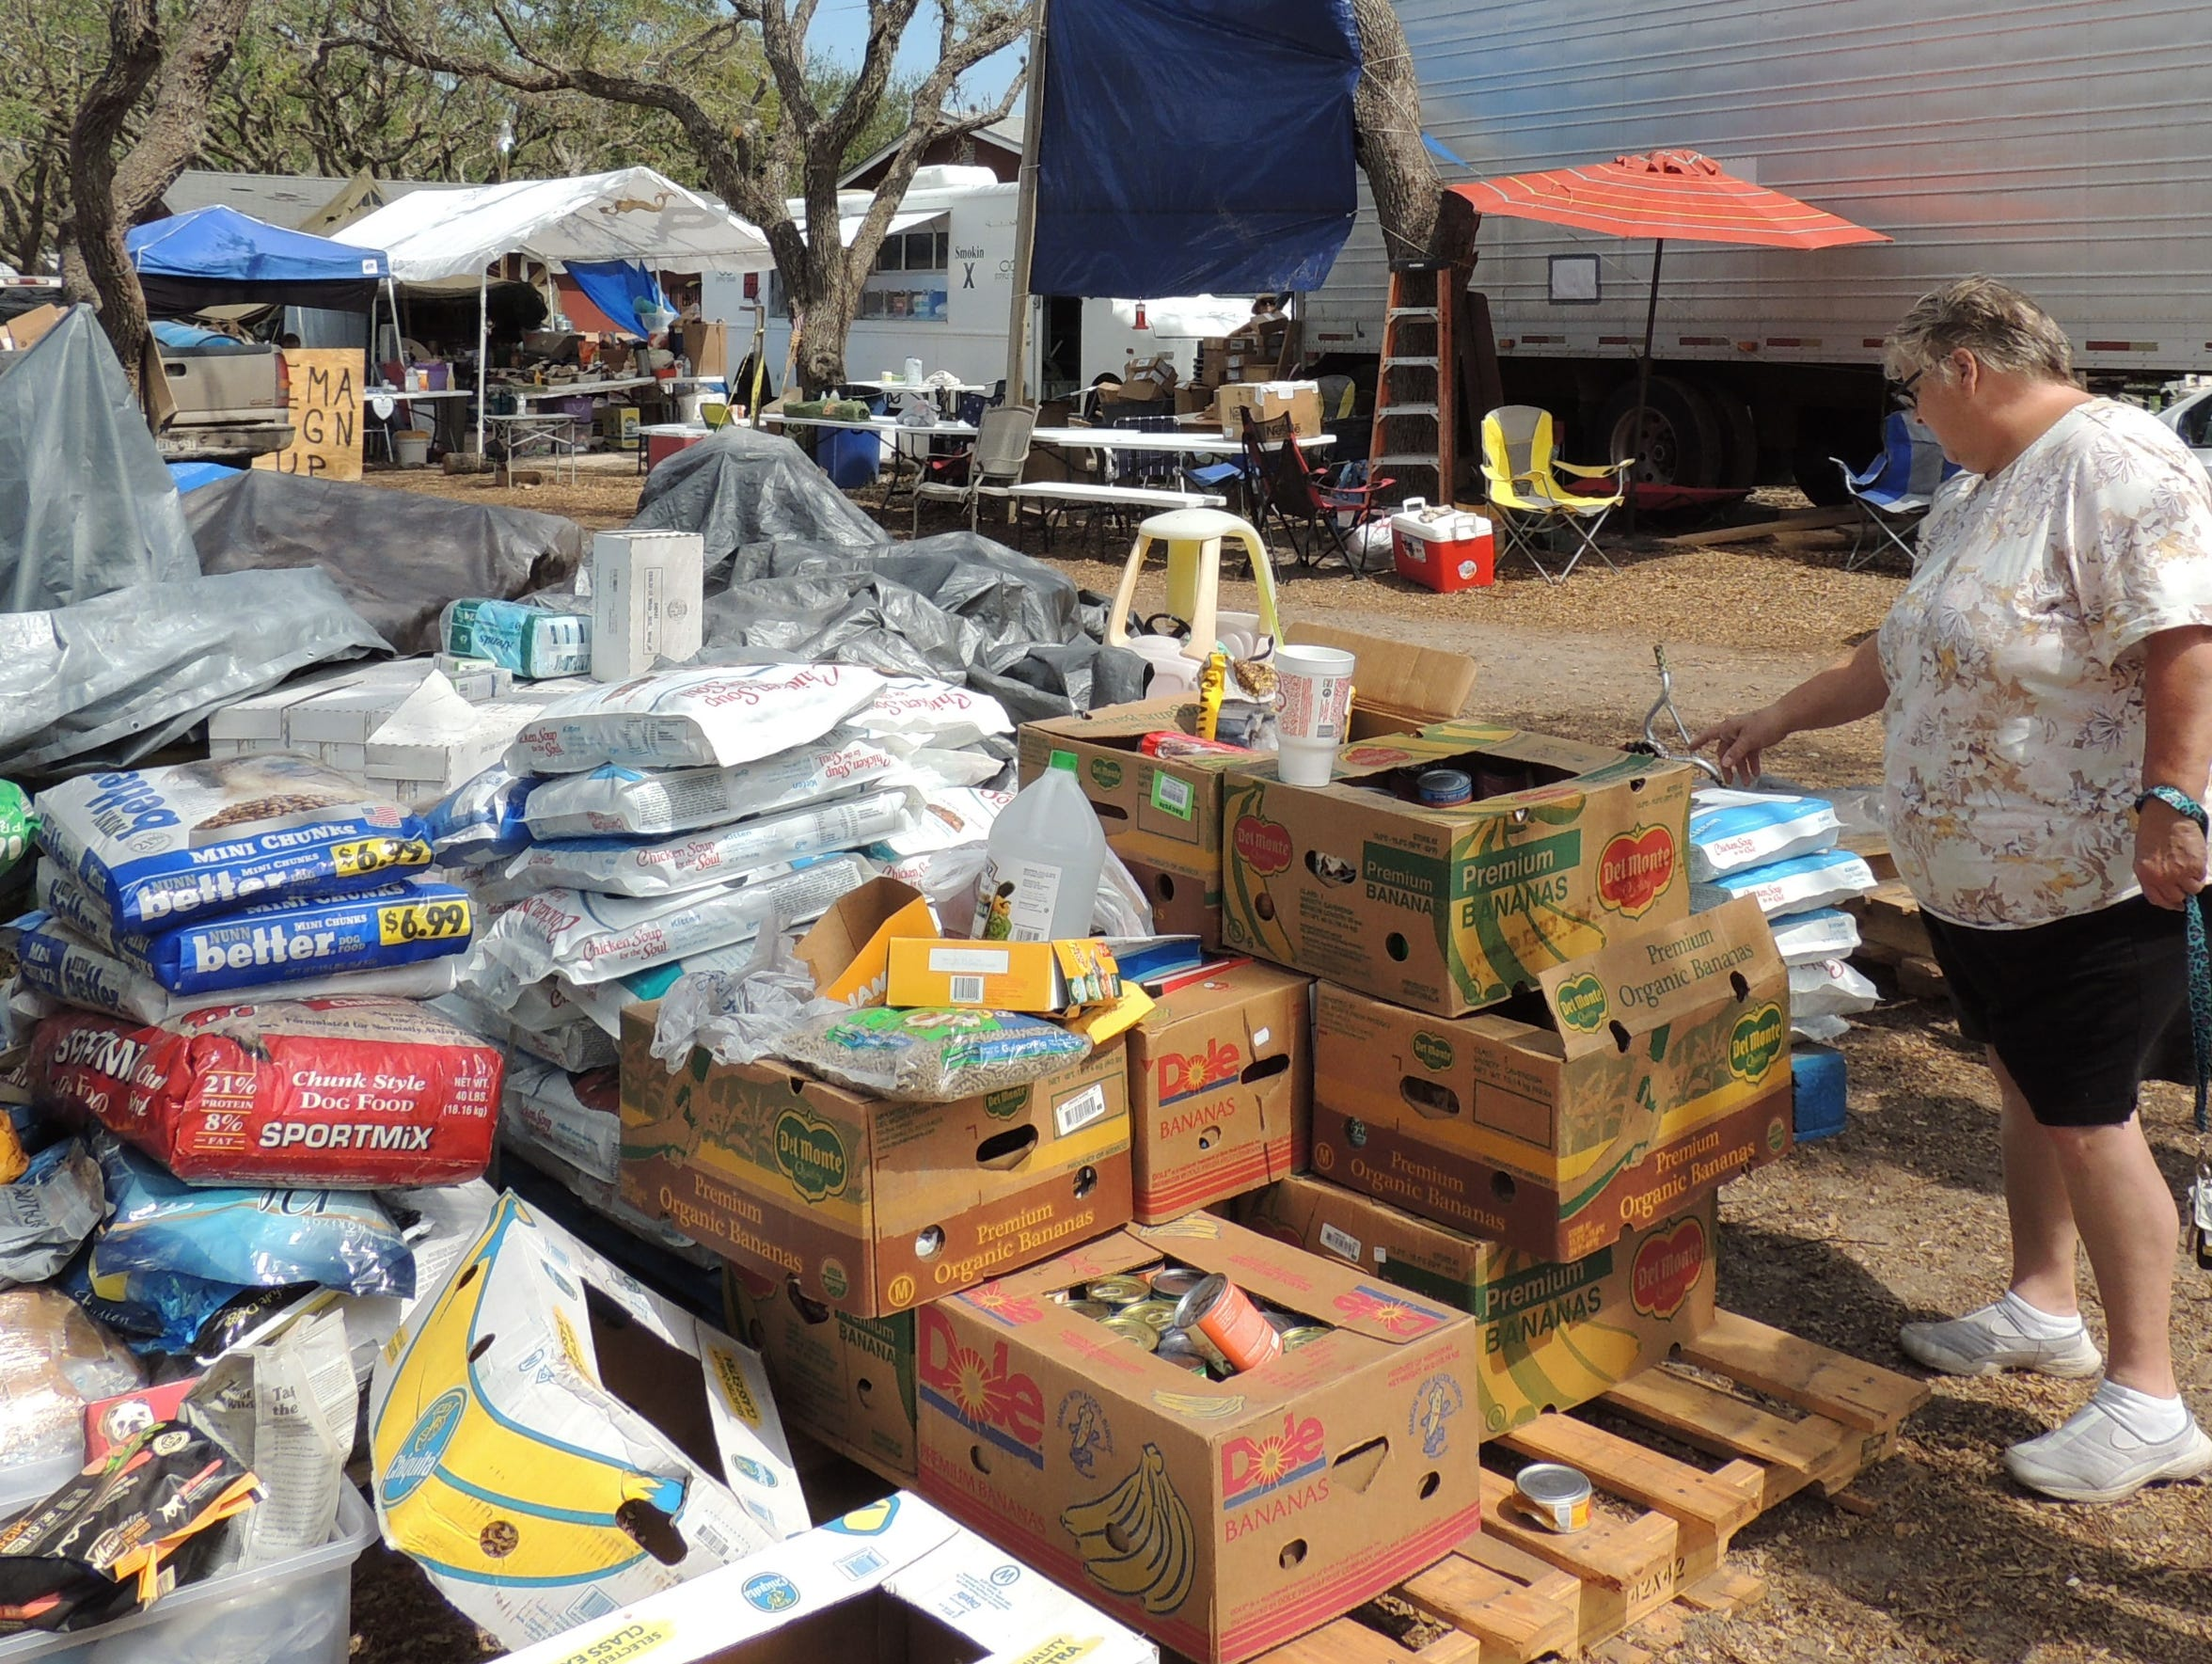 Donations of food and supplies came pouring into Rockport